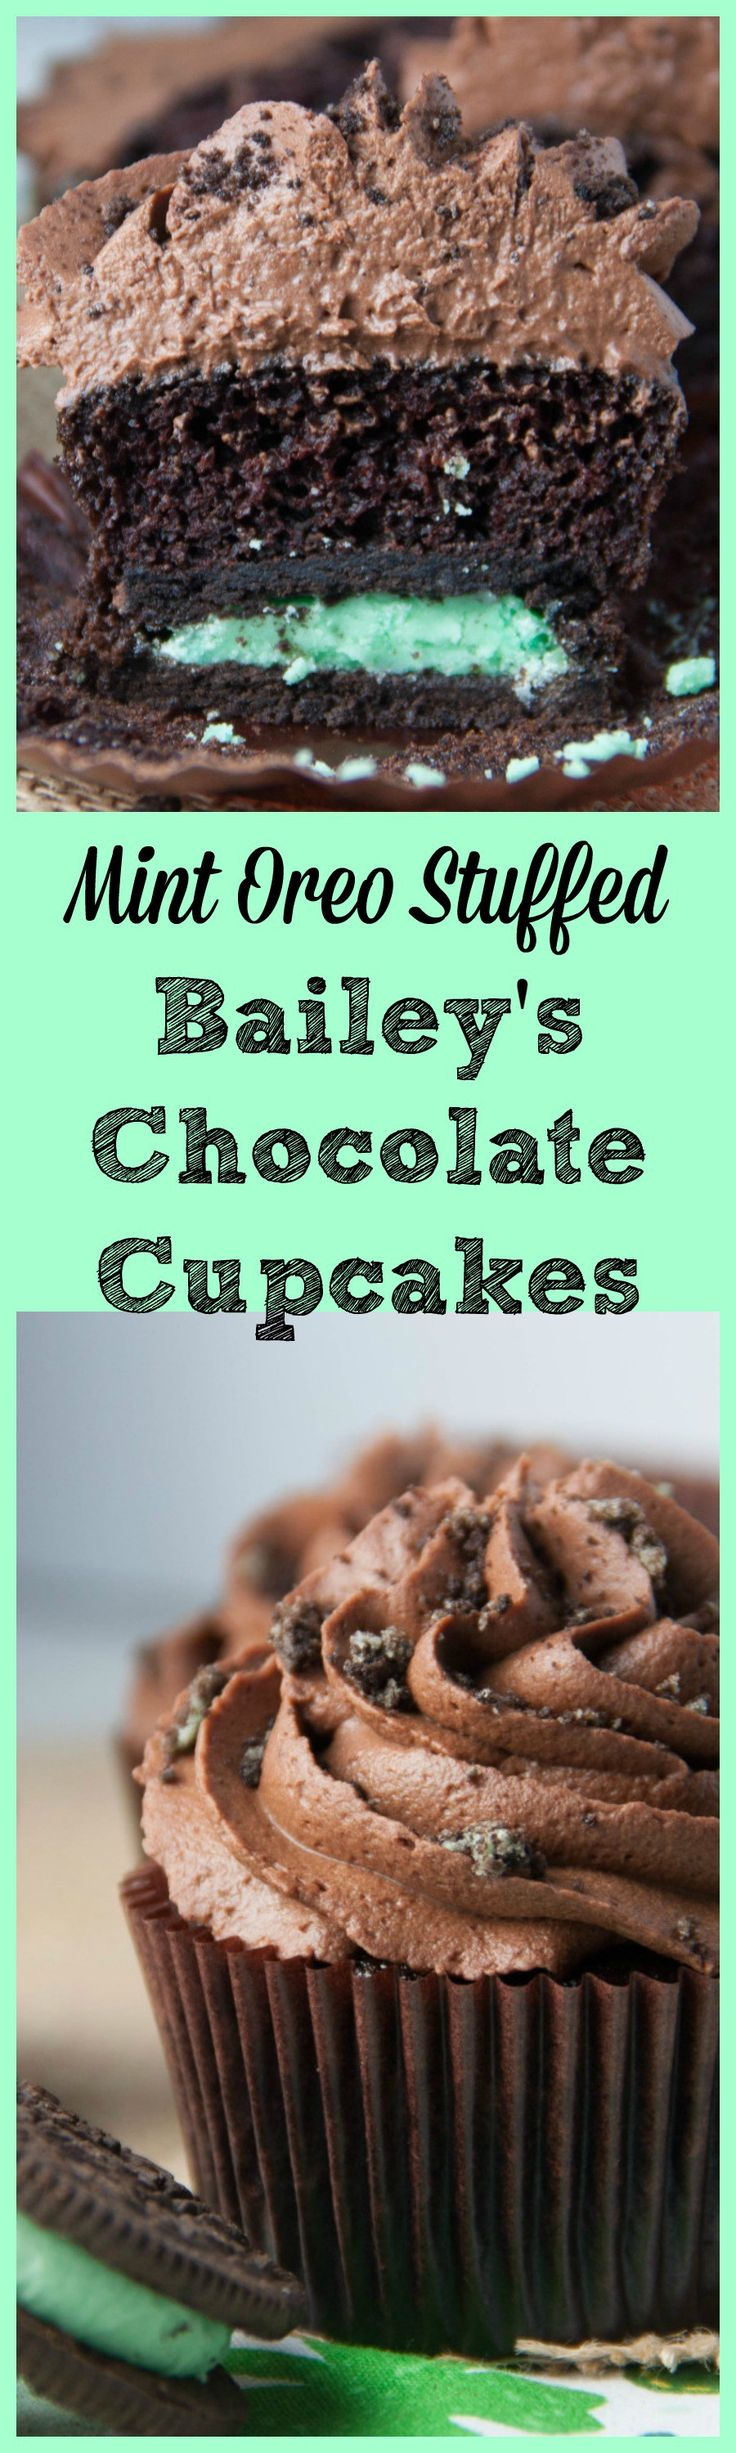 Mint Oreo Stuffed Bailey's Chocolate Cupcakes - Boston Girl Bakes